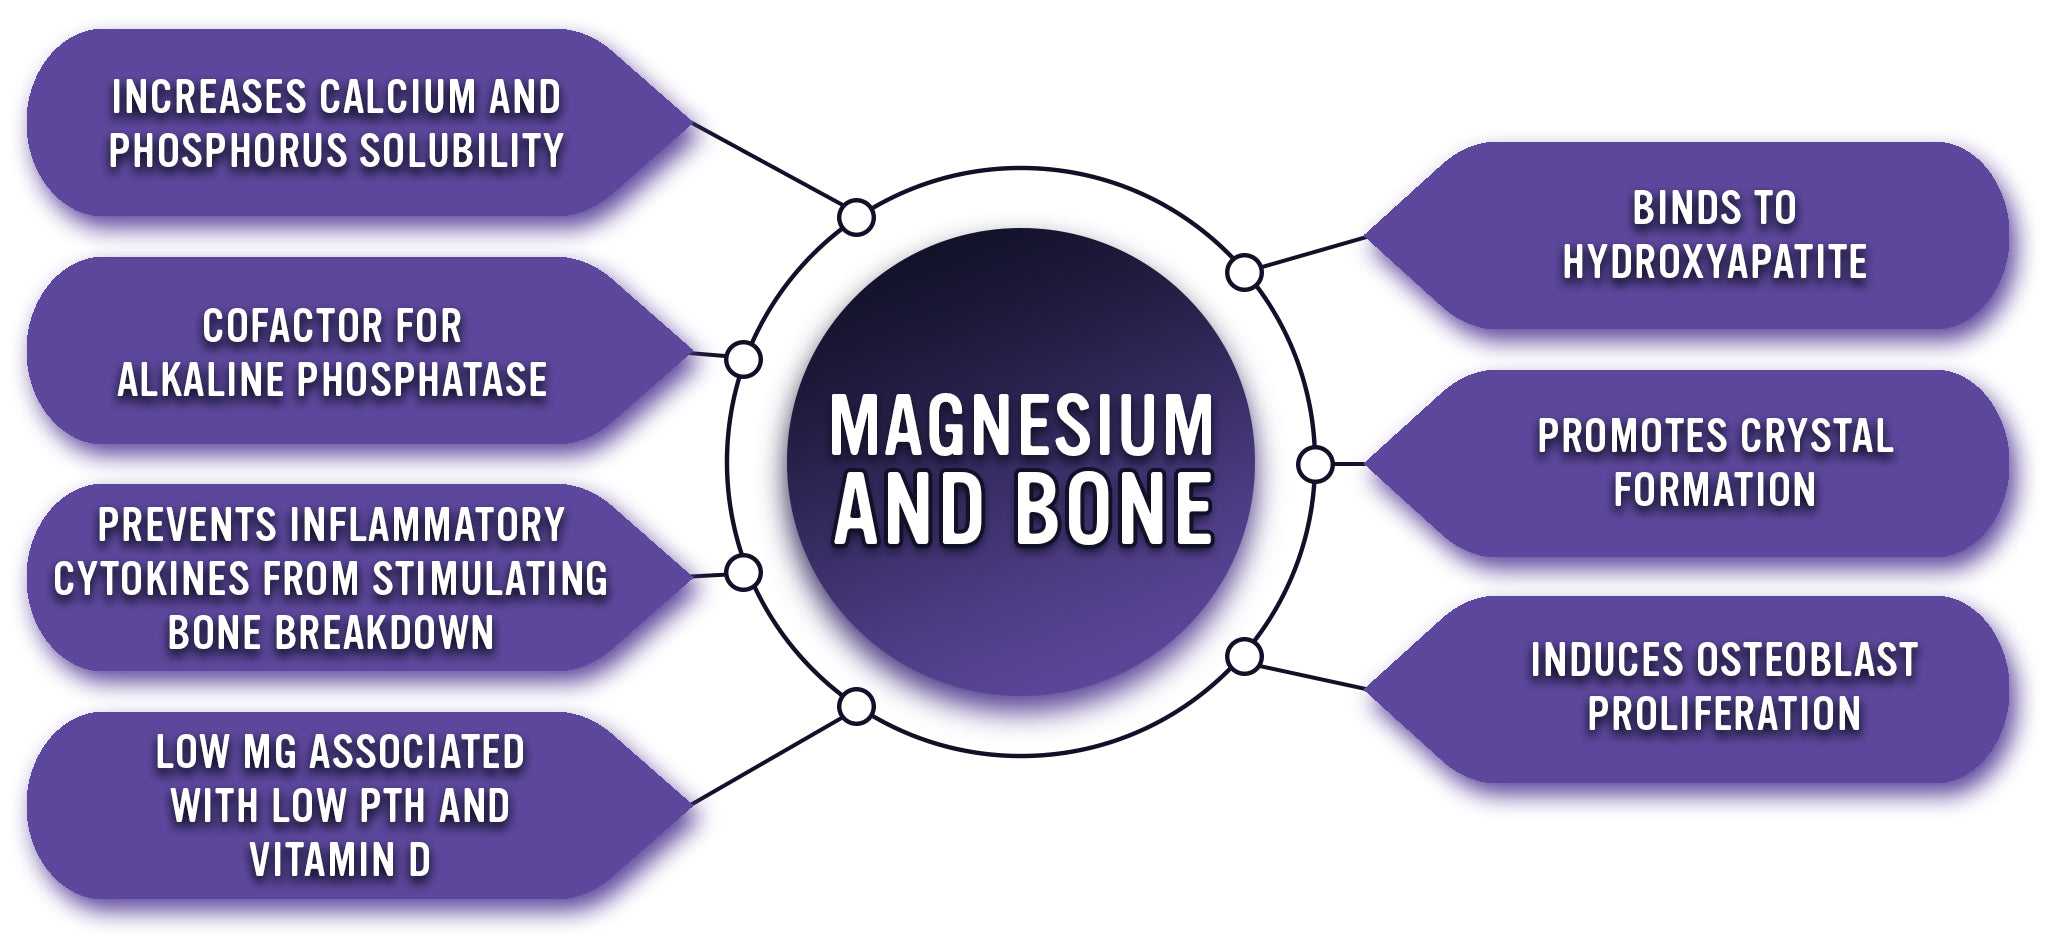 Magnesium and Bone